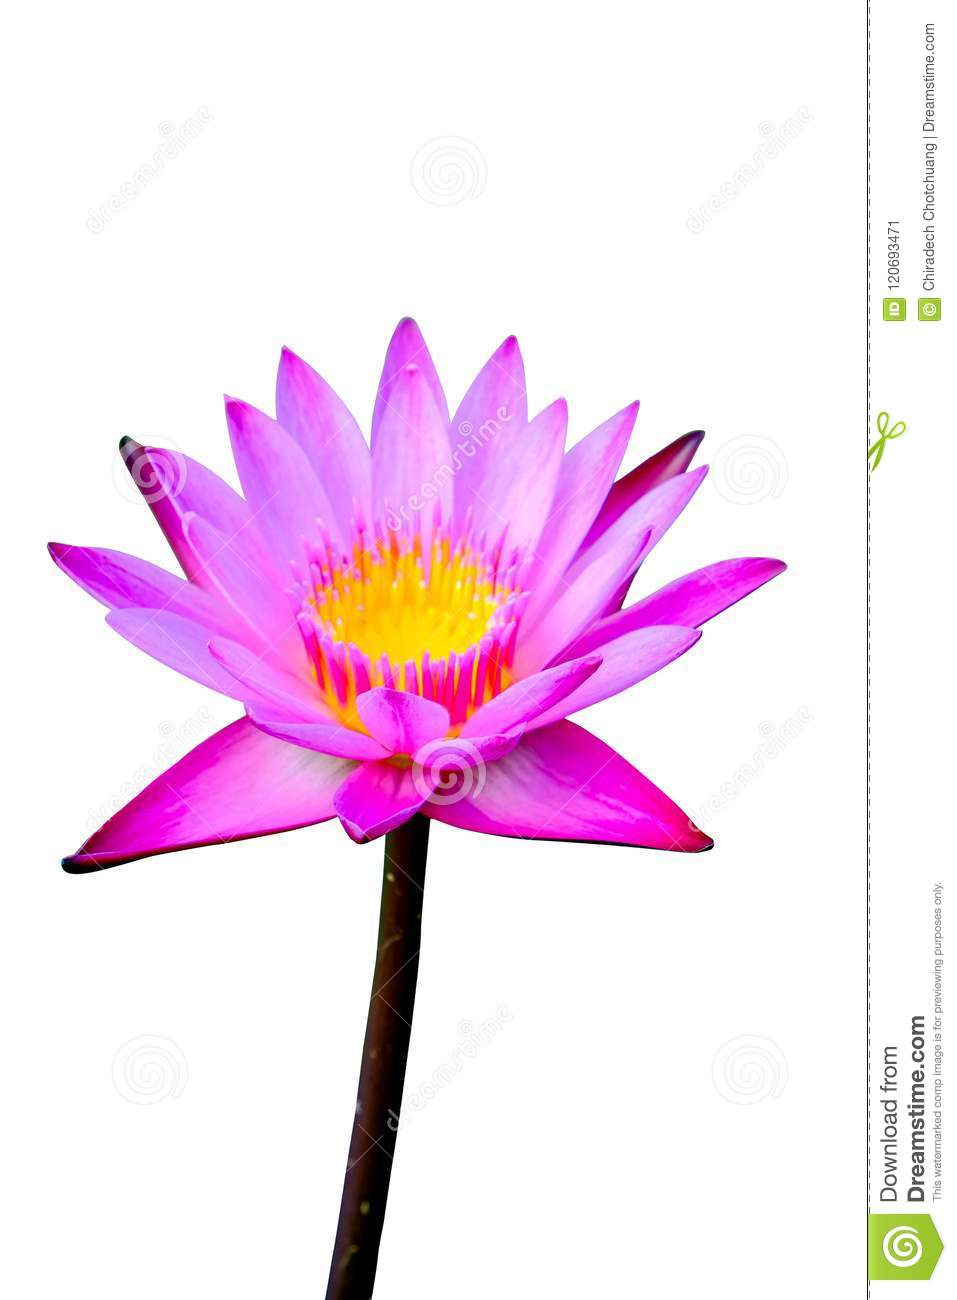 Pink Lotus Are Blooming Beautifully Stock Image Image Of Blossom